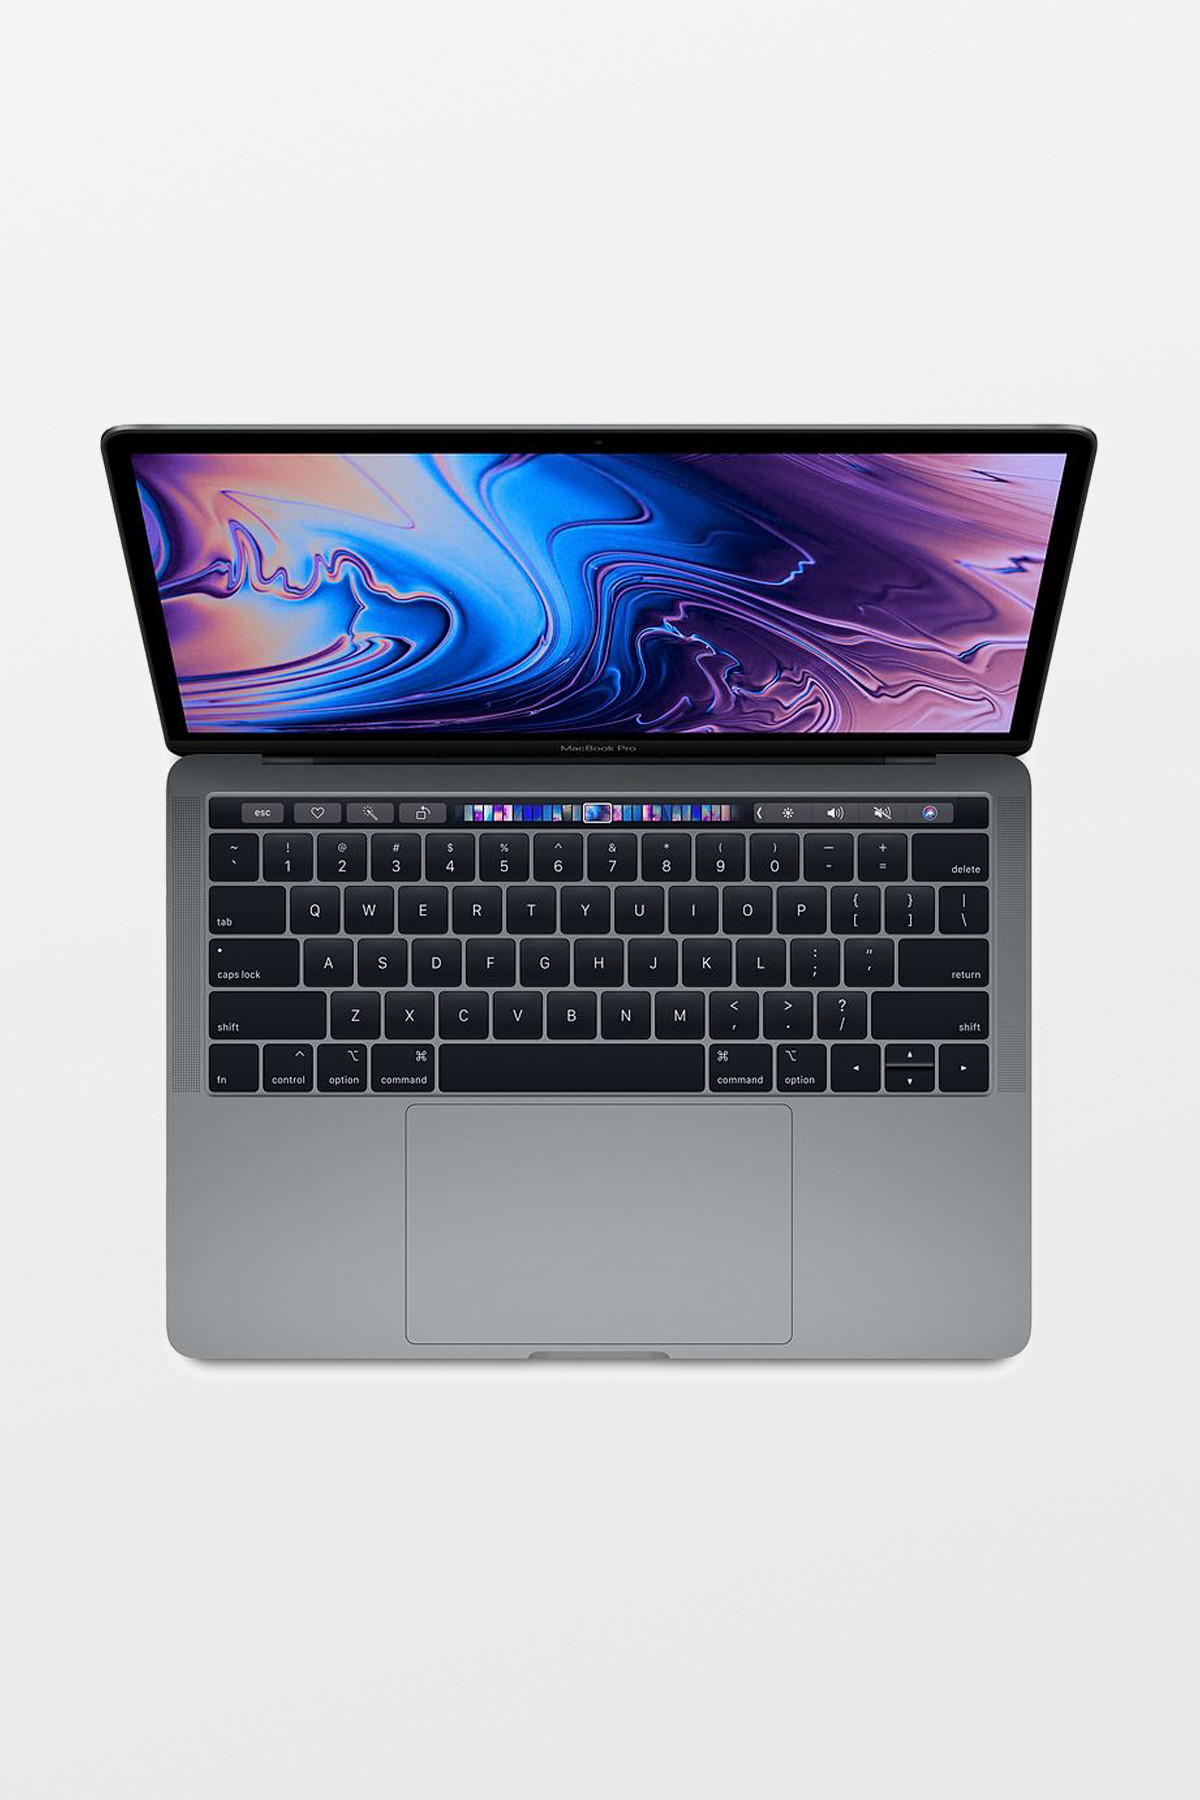 Apple MacBook Pro with Touch Bar 13-inch (2.3GHz i5/8GB/256GB Flash/Intel Iris Plus Graphics 655) - Space Grey - Refurbished